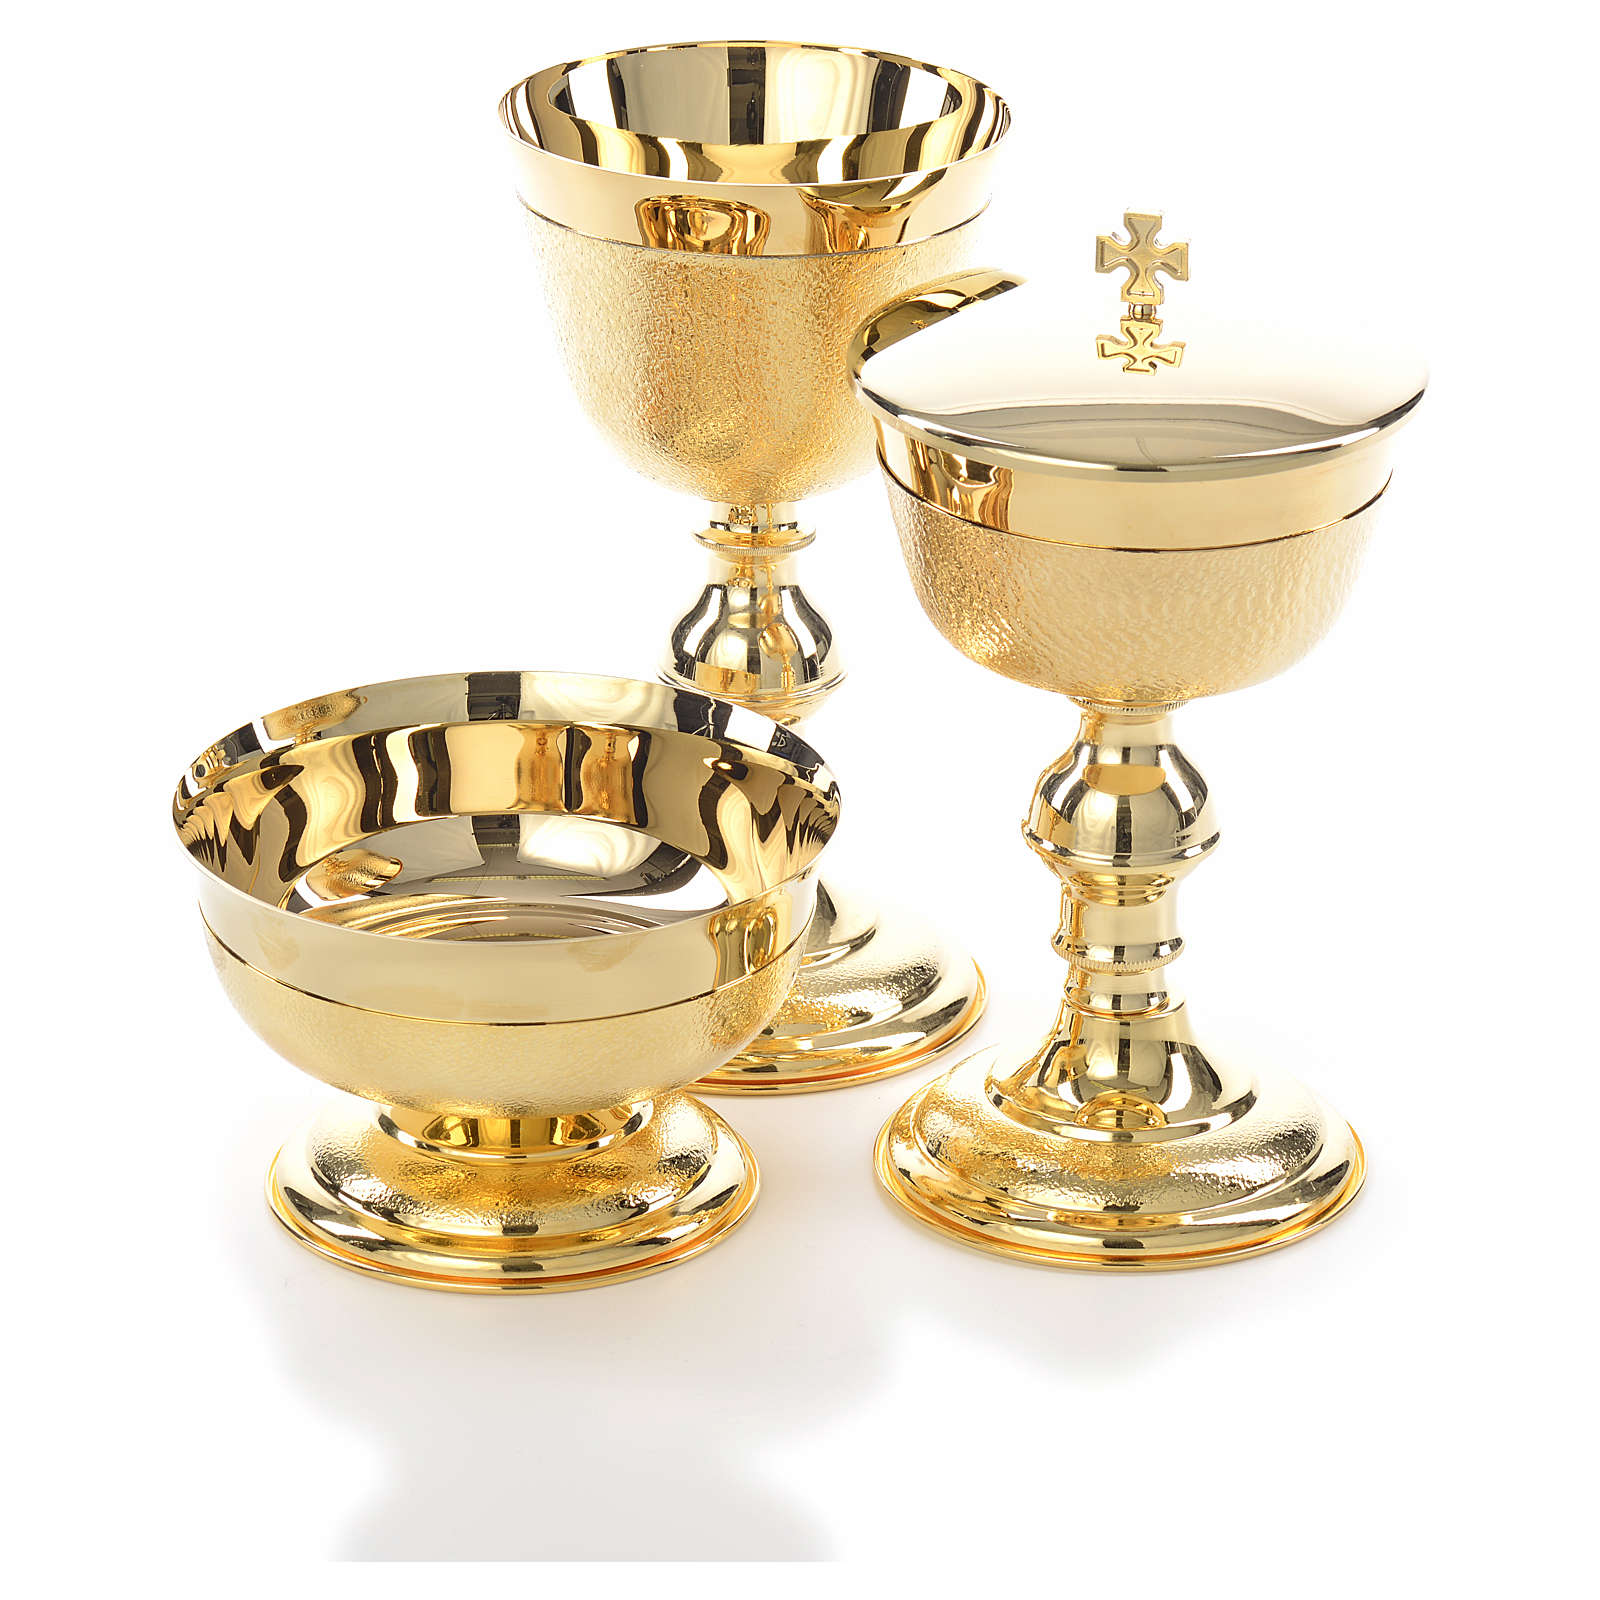 Chalice, ciborium and bowl with knurled gold plated finish 4